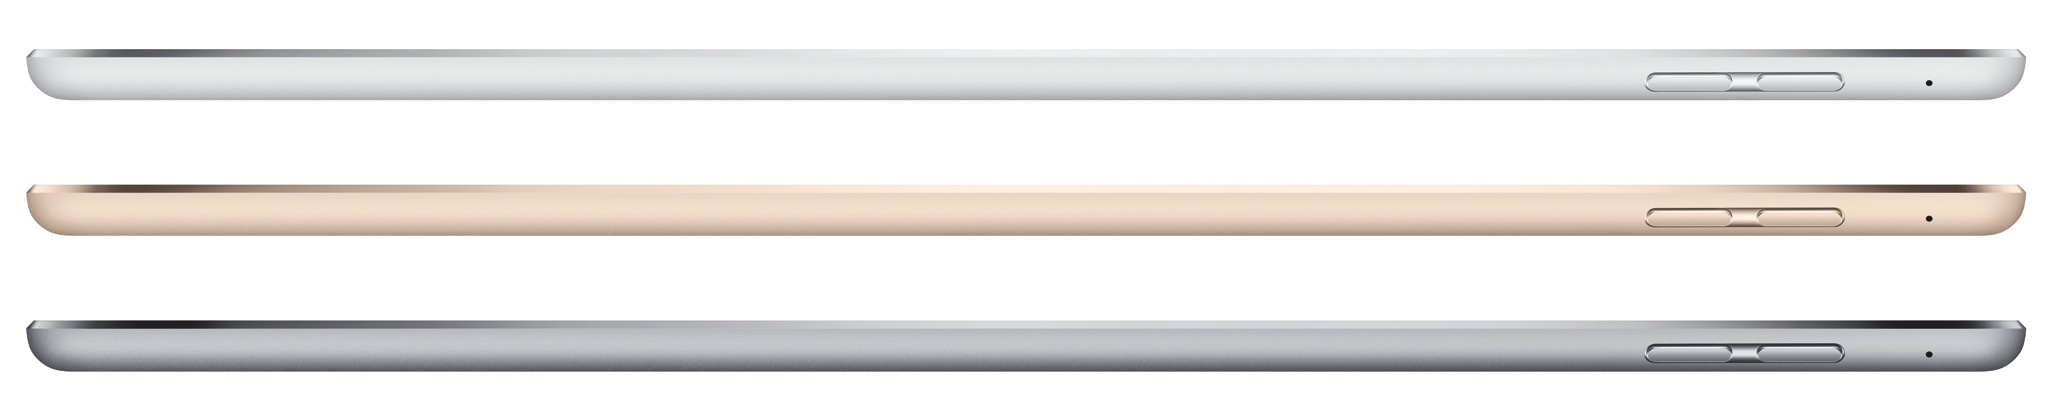 iPad Air 2 (profile 001, Space Gray, Silver, Gold)